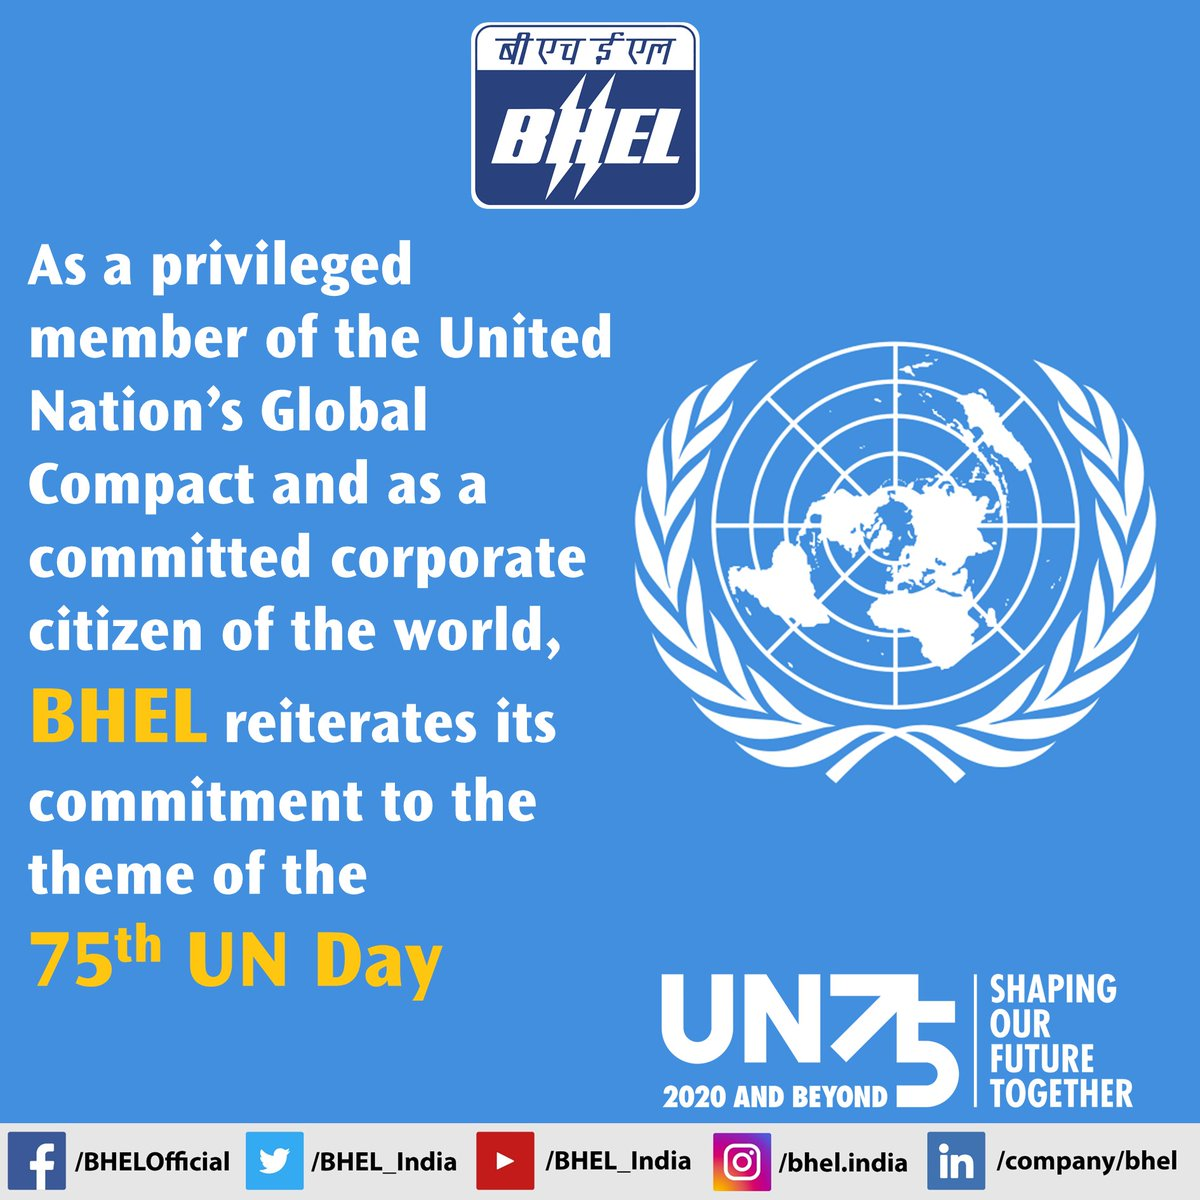 #UN75 #unday #UNDay2020 #UnitedNationsDay https://t.co/RqtptARTu3